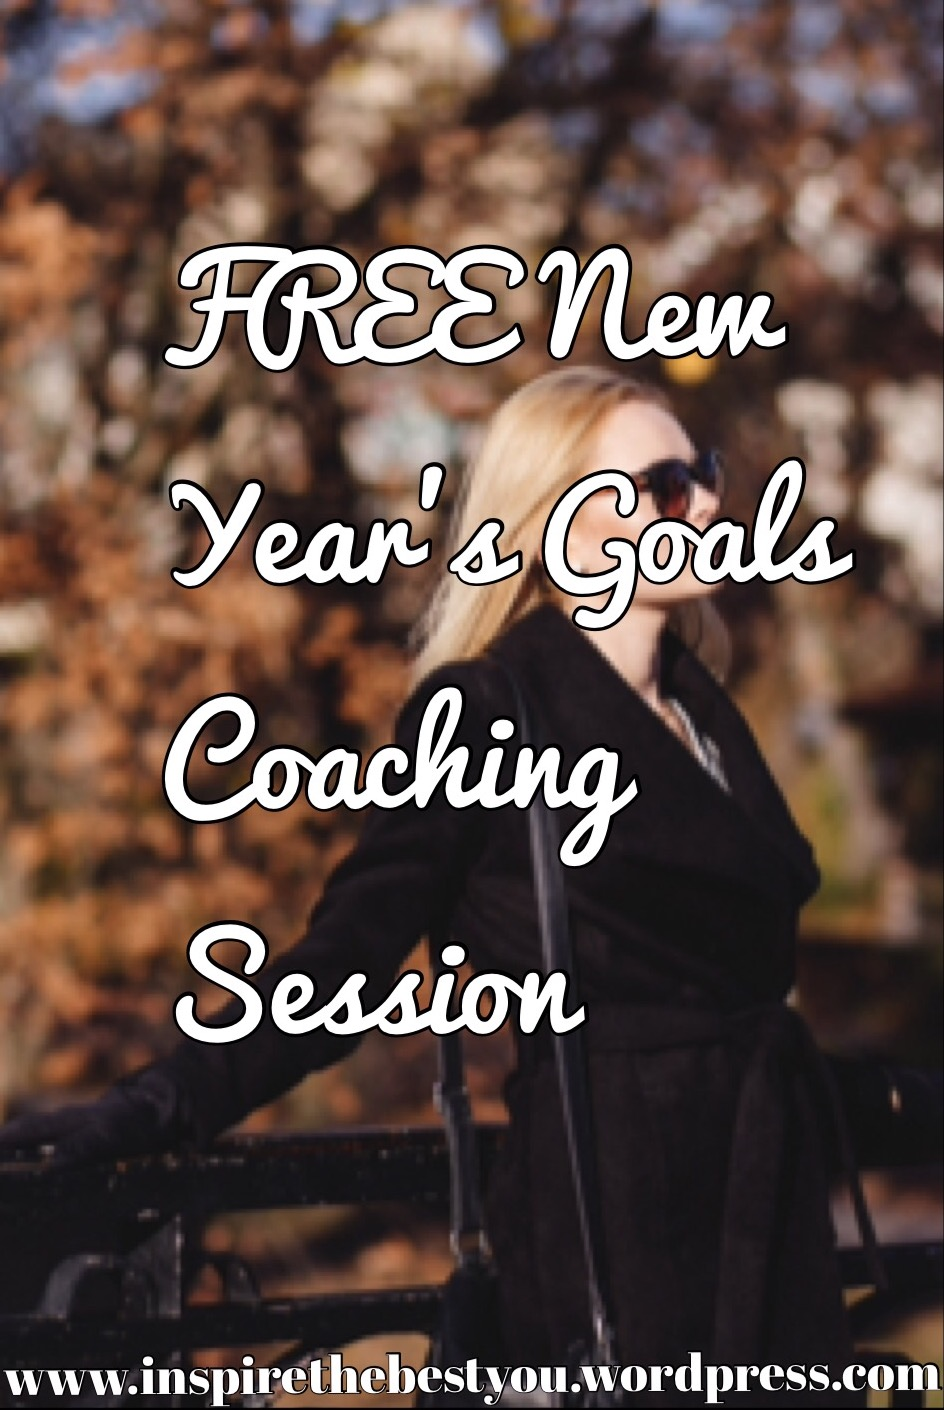 FREE New Year's Goals Coaching Session